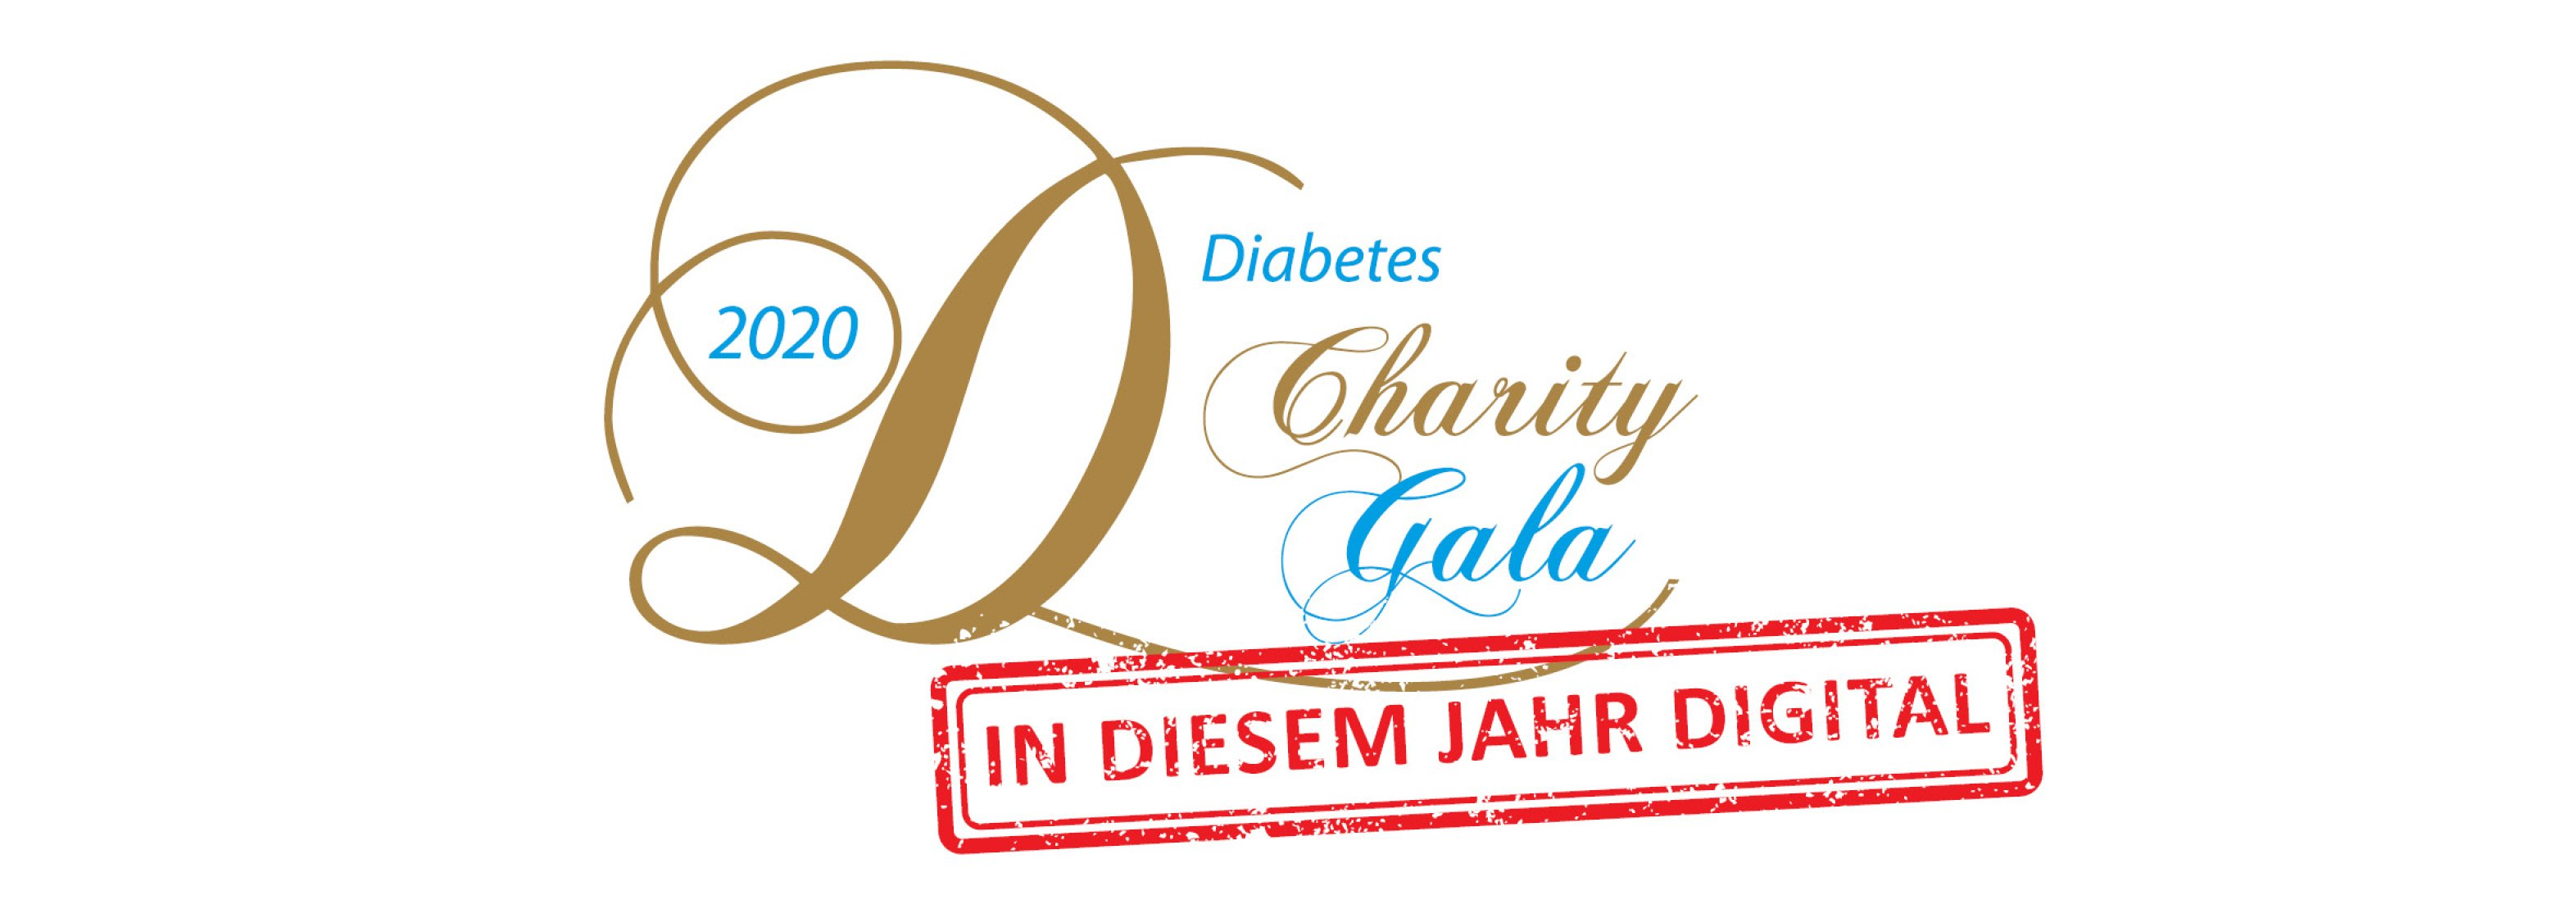 Logo Diabetes-Charity-Gala 2020 Hero-Bild